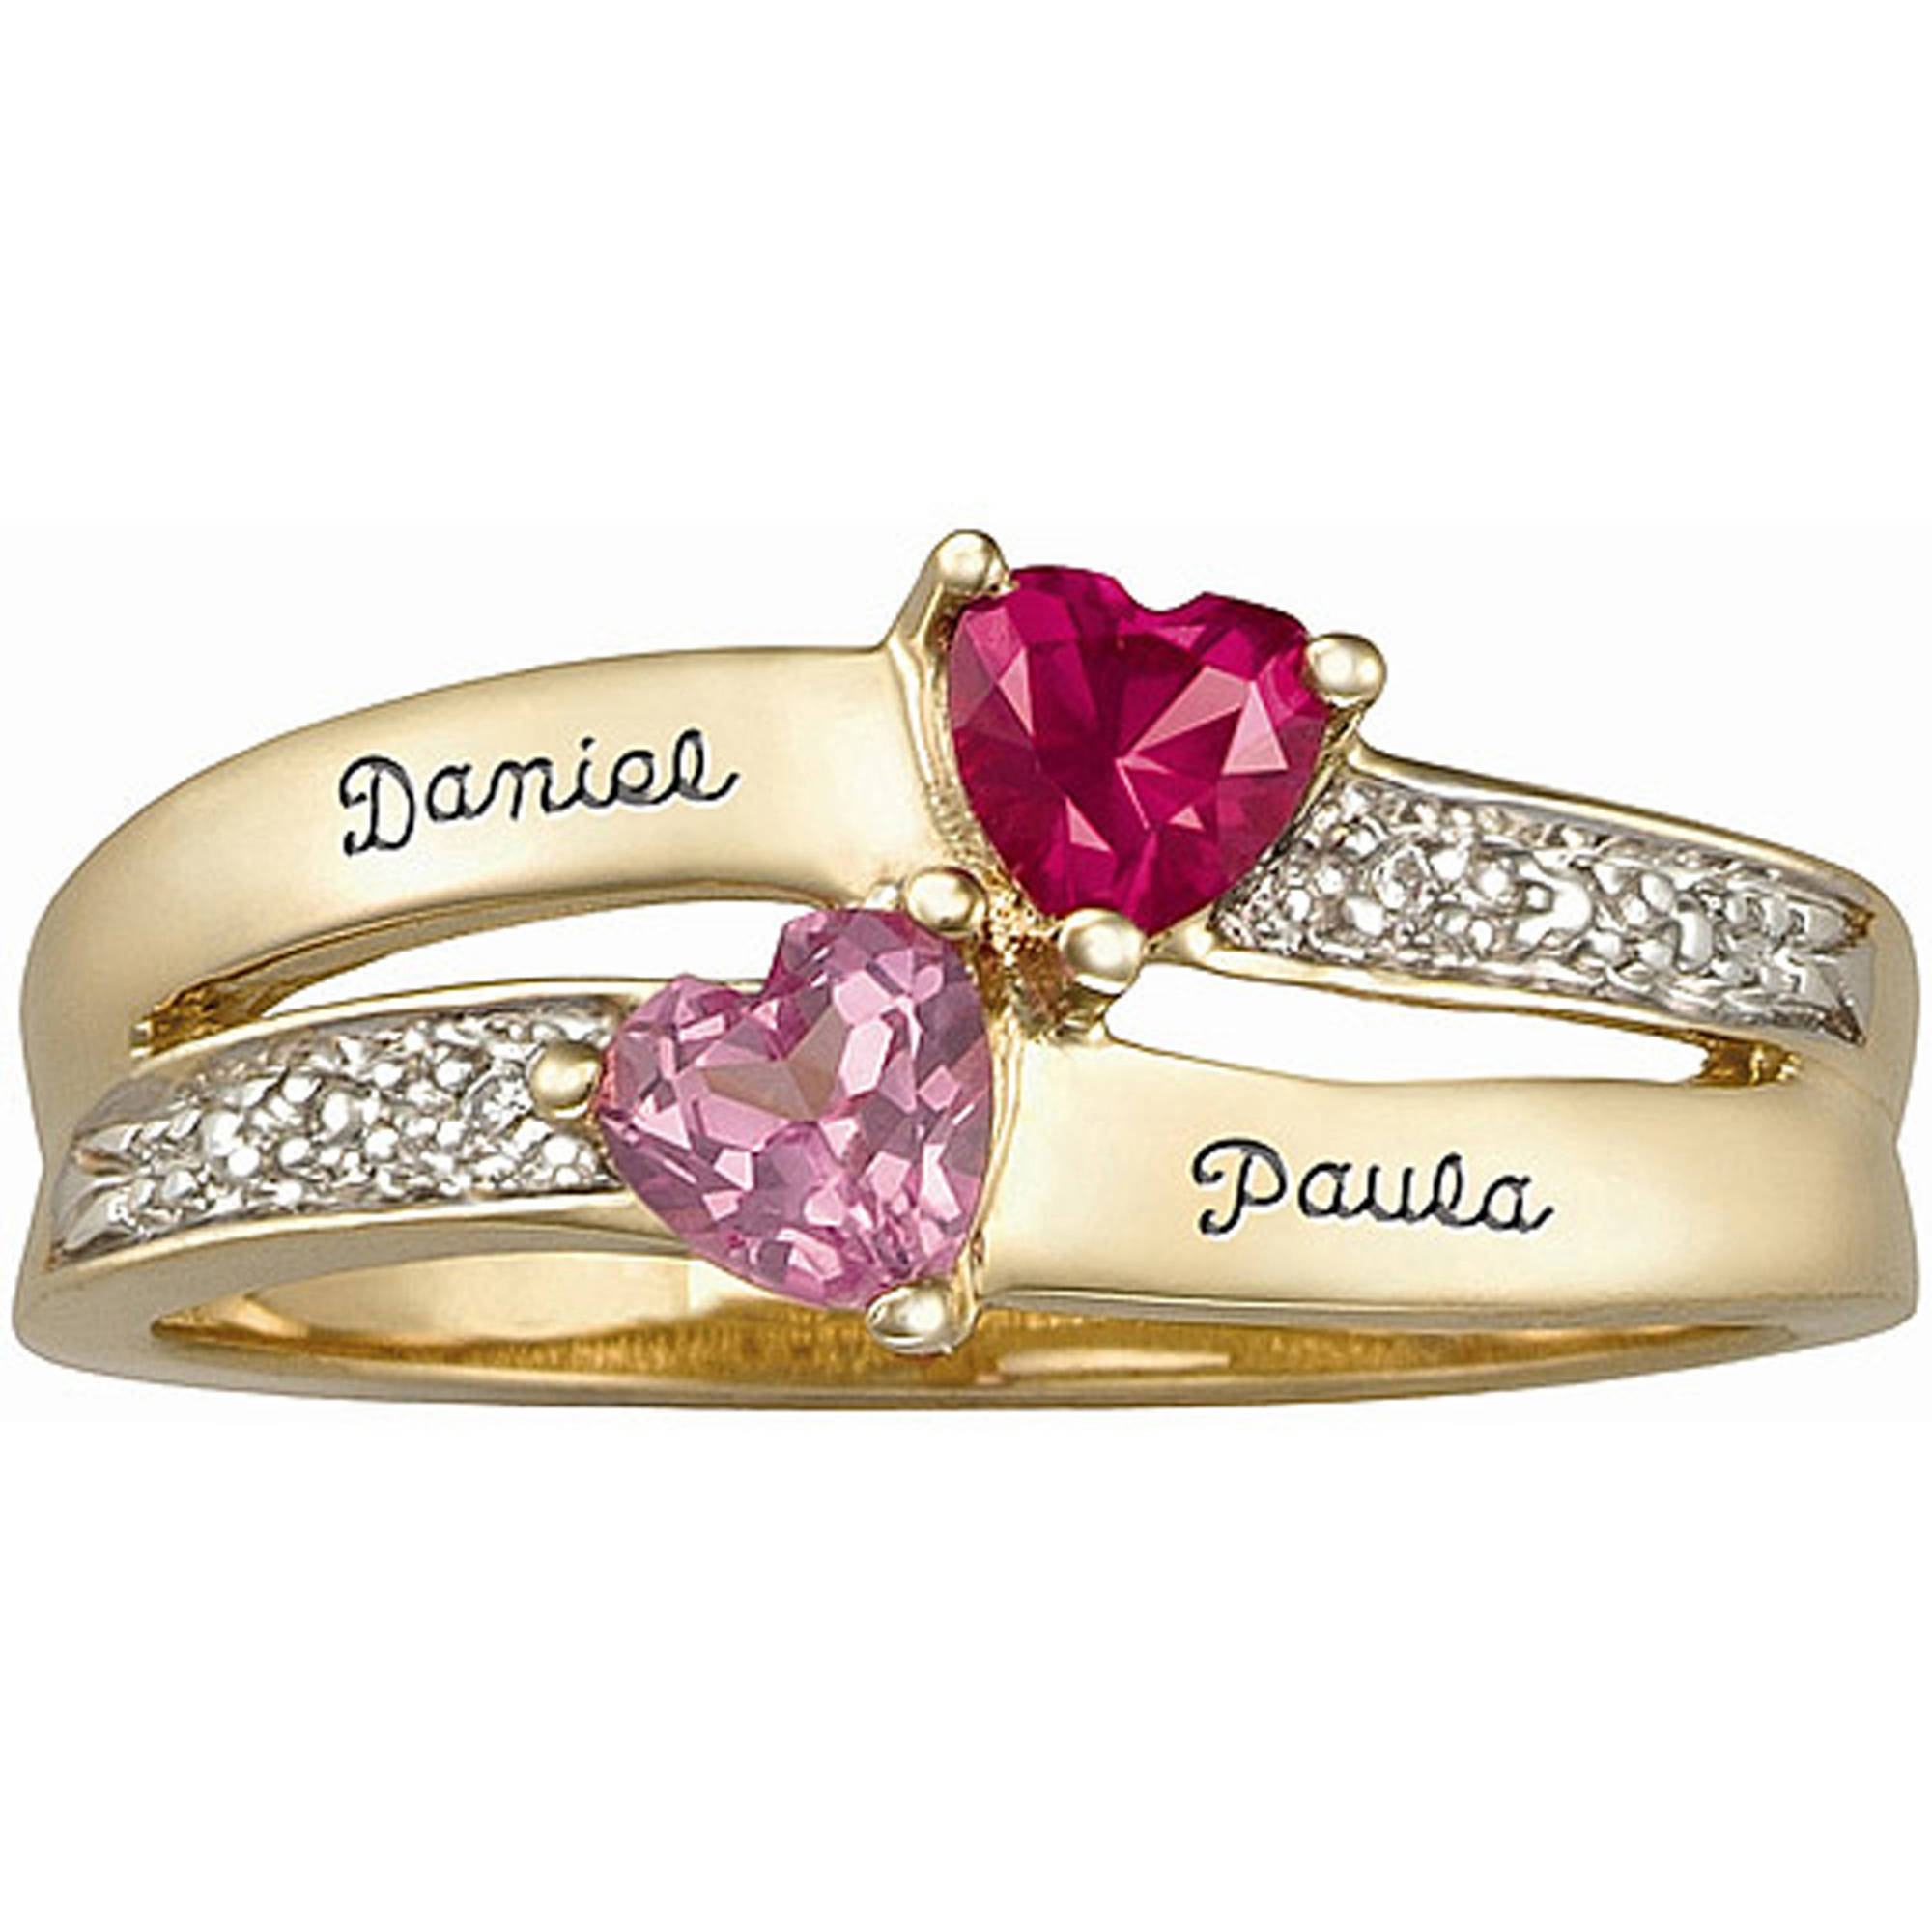 Keepsake Personalized Enamored Couple's Ring with Birthstones